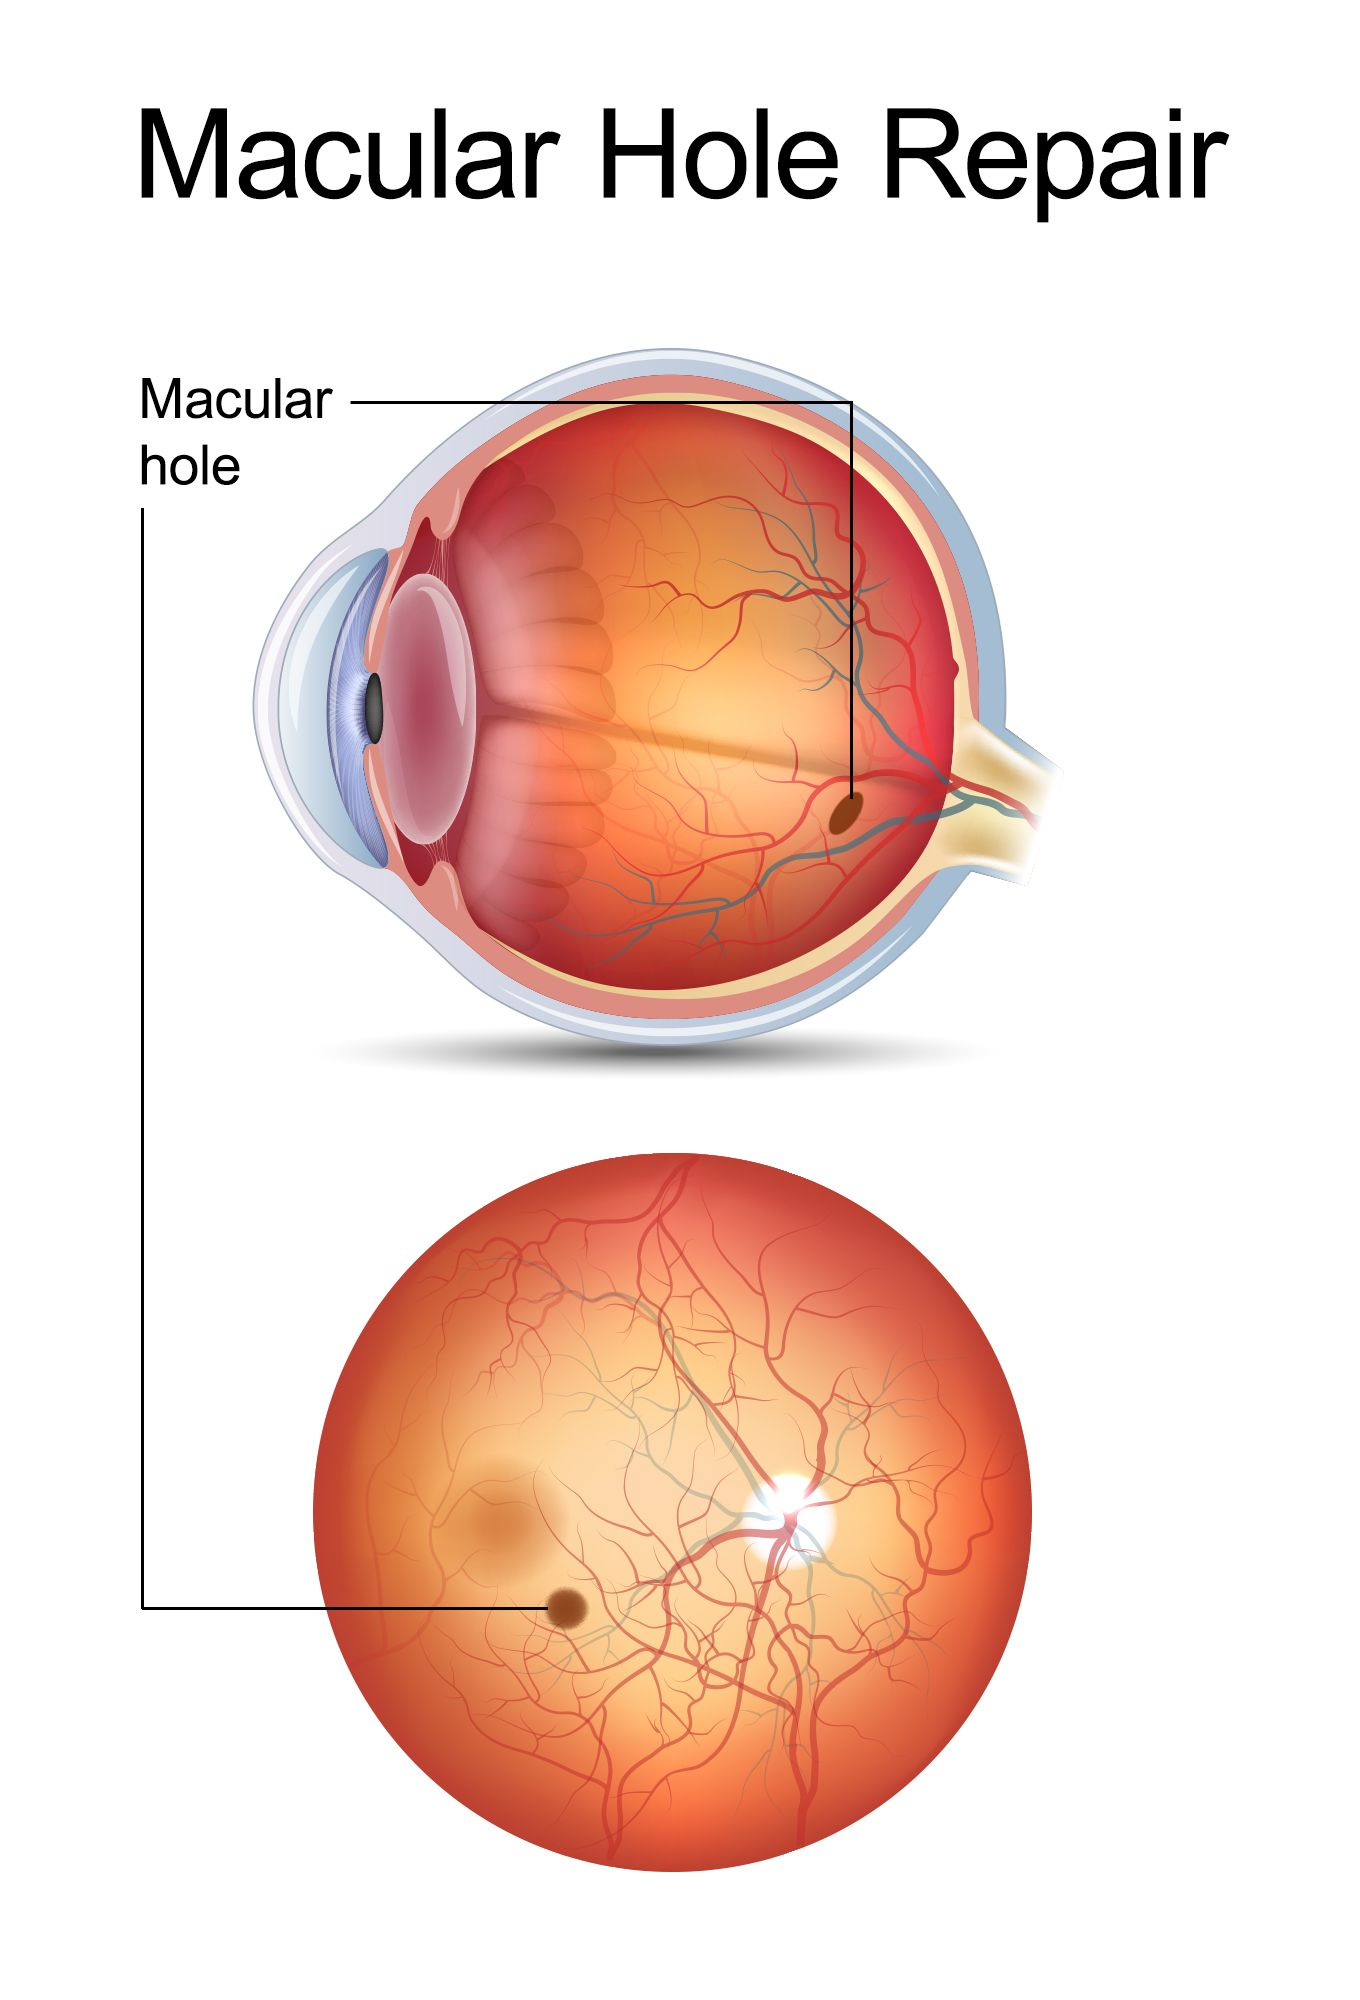 How to repair a macular hole